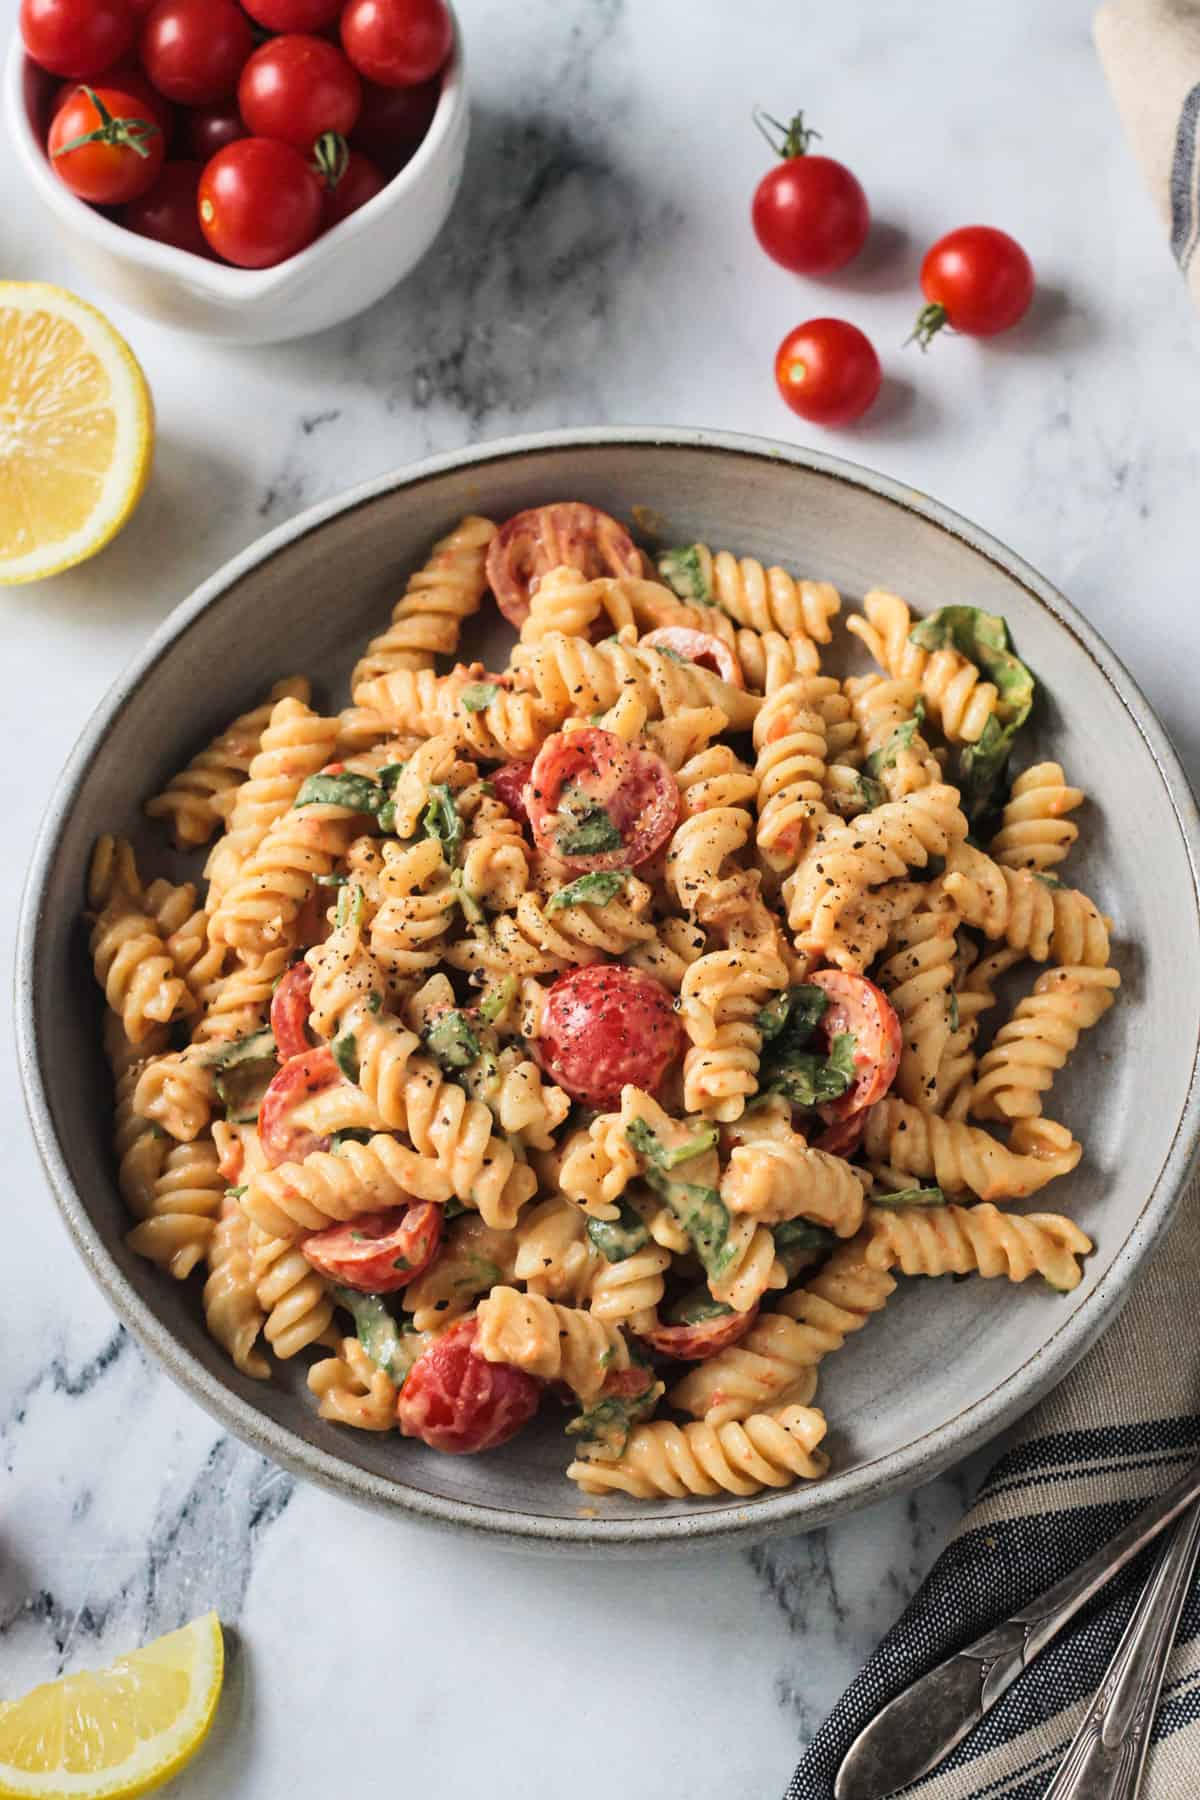 Rotini pasta in creamy sauce with tomatoes and spinach in a gray flat bowl.